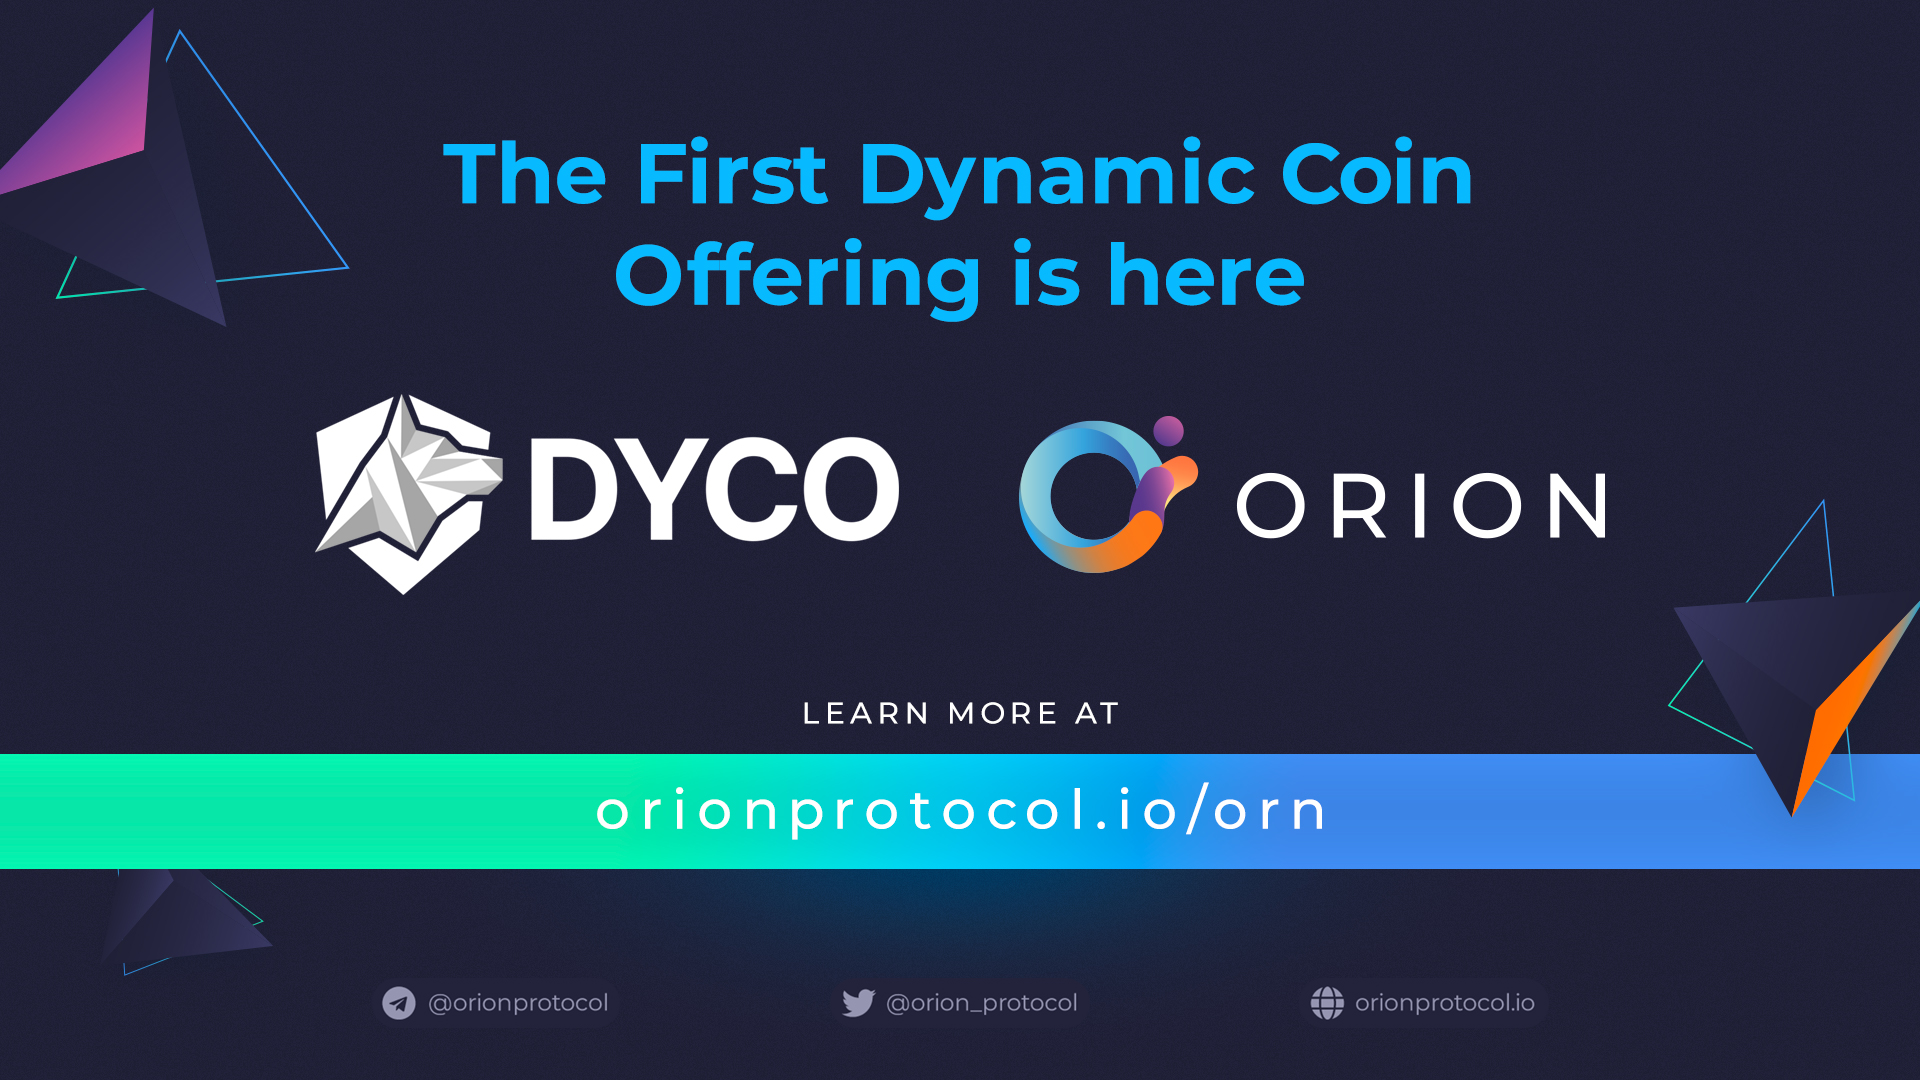 The first Dynamic Coin Offering is here.